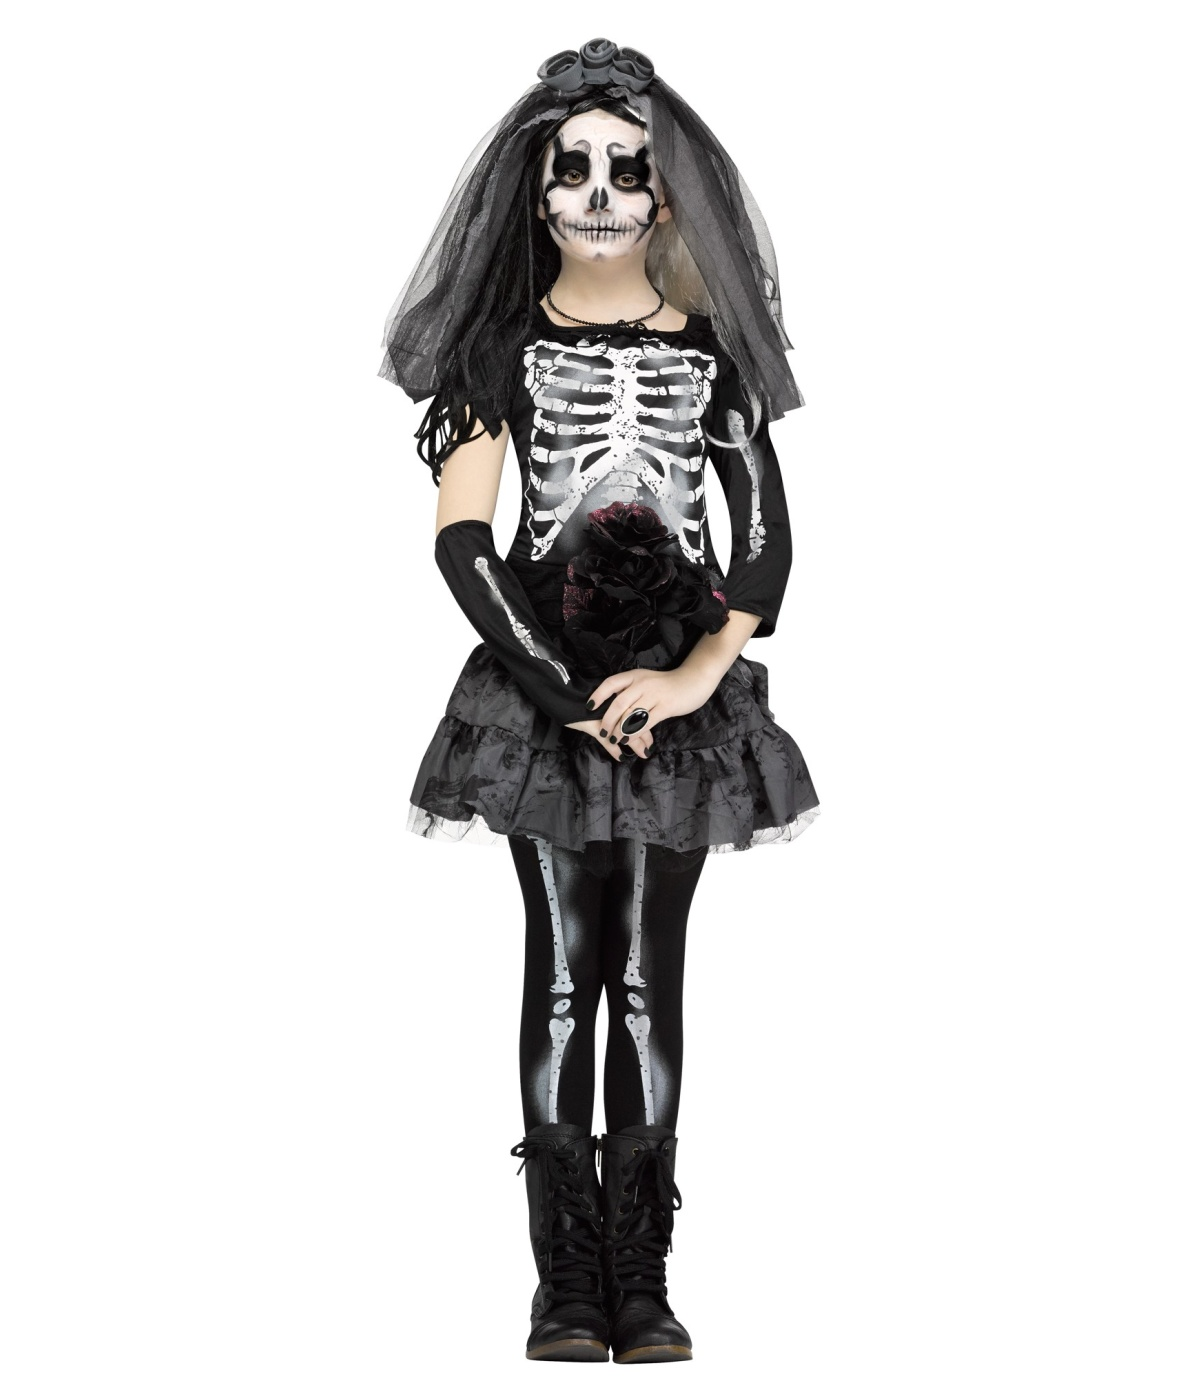 Ghastly Skeleton Bride Girls Costume  sc 1 st  Wonder Costumes & Ghastly Skeleton Bride Girls Costume - Scary Costumes